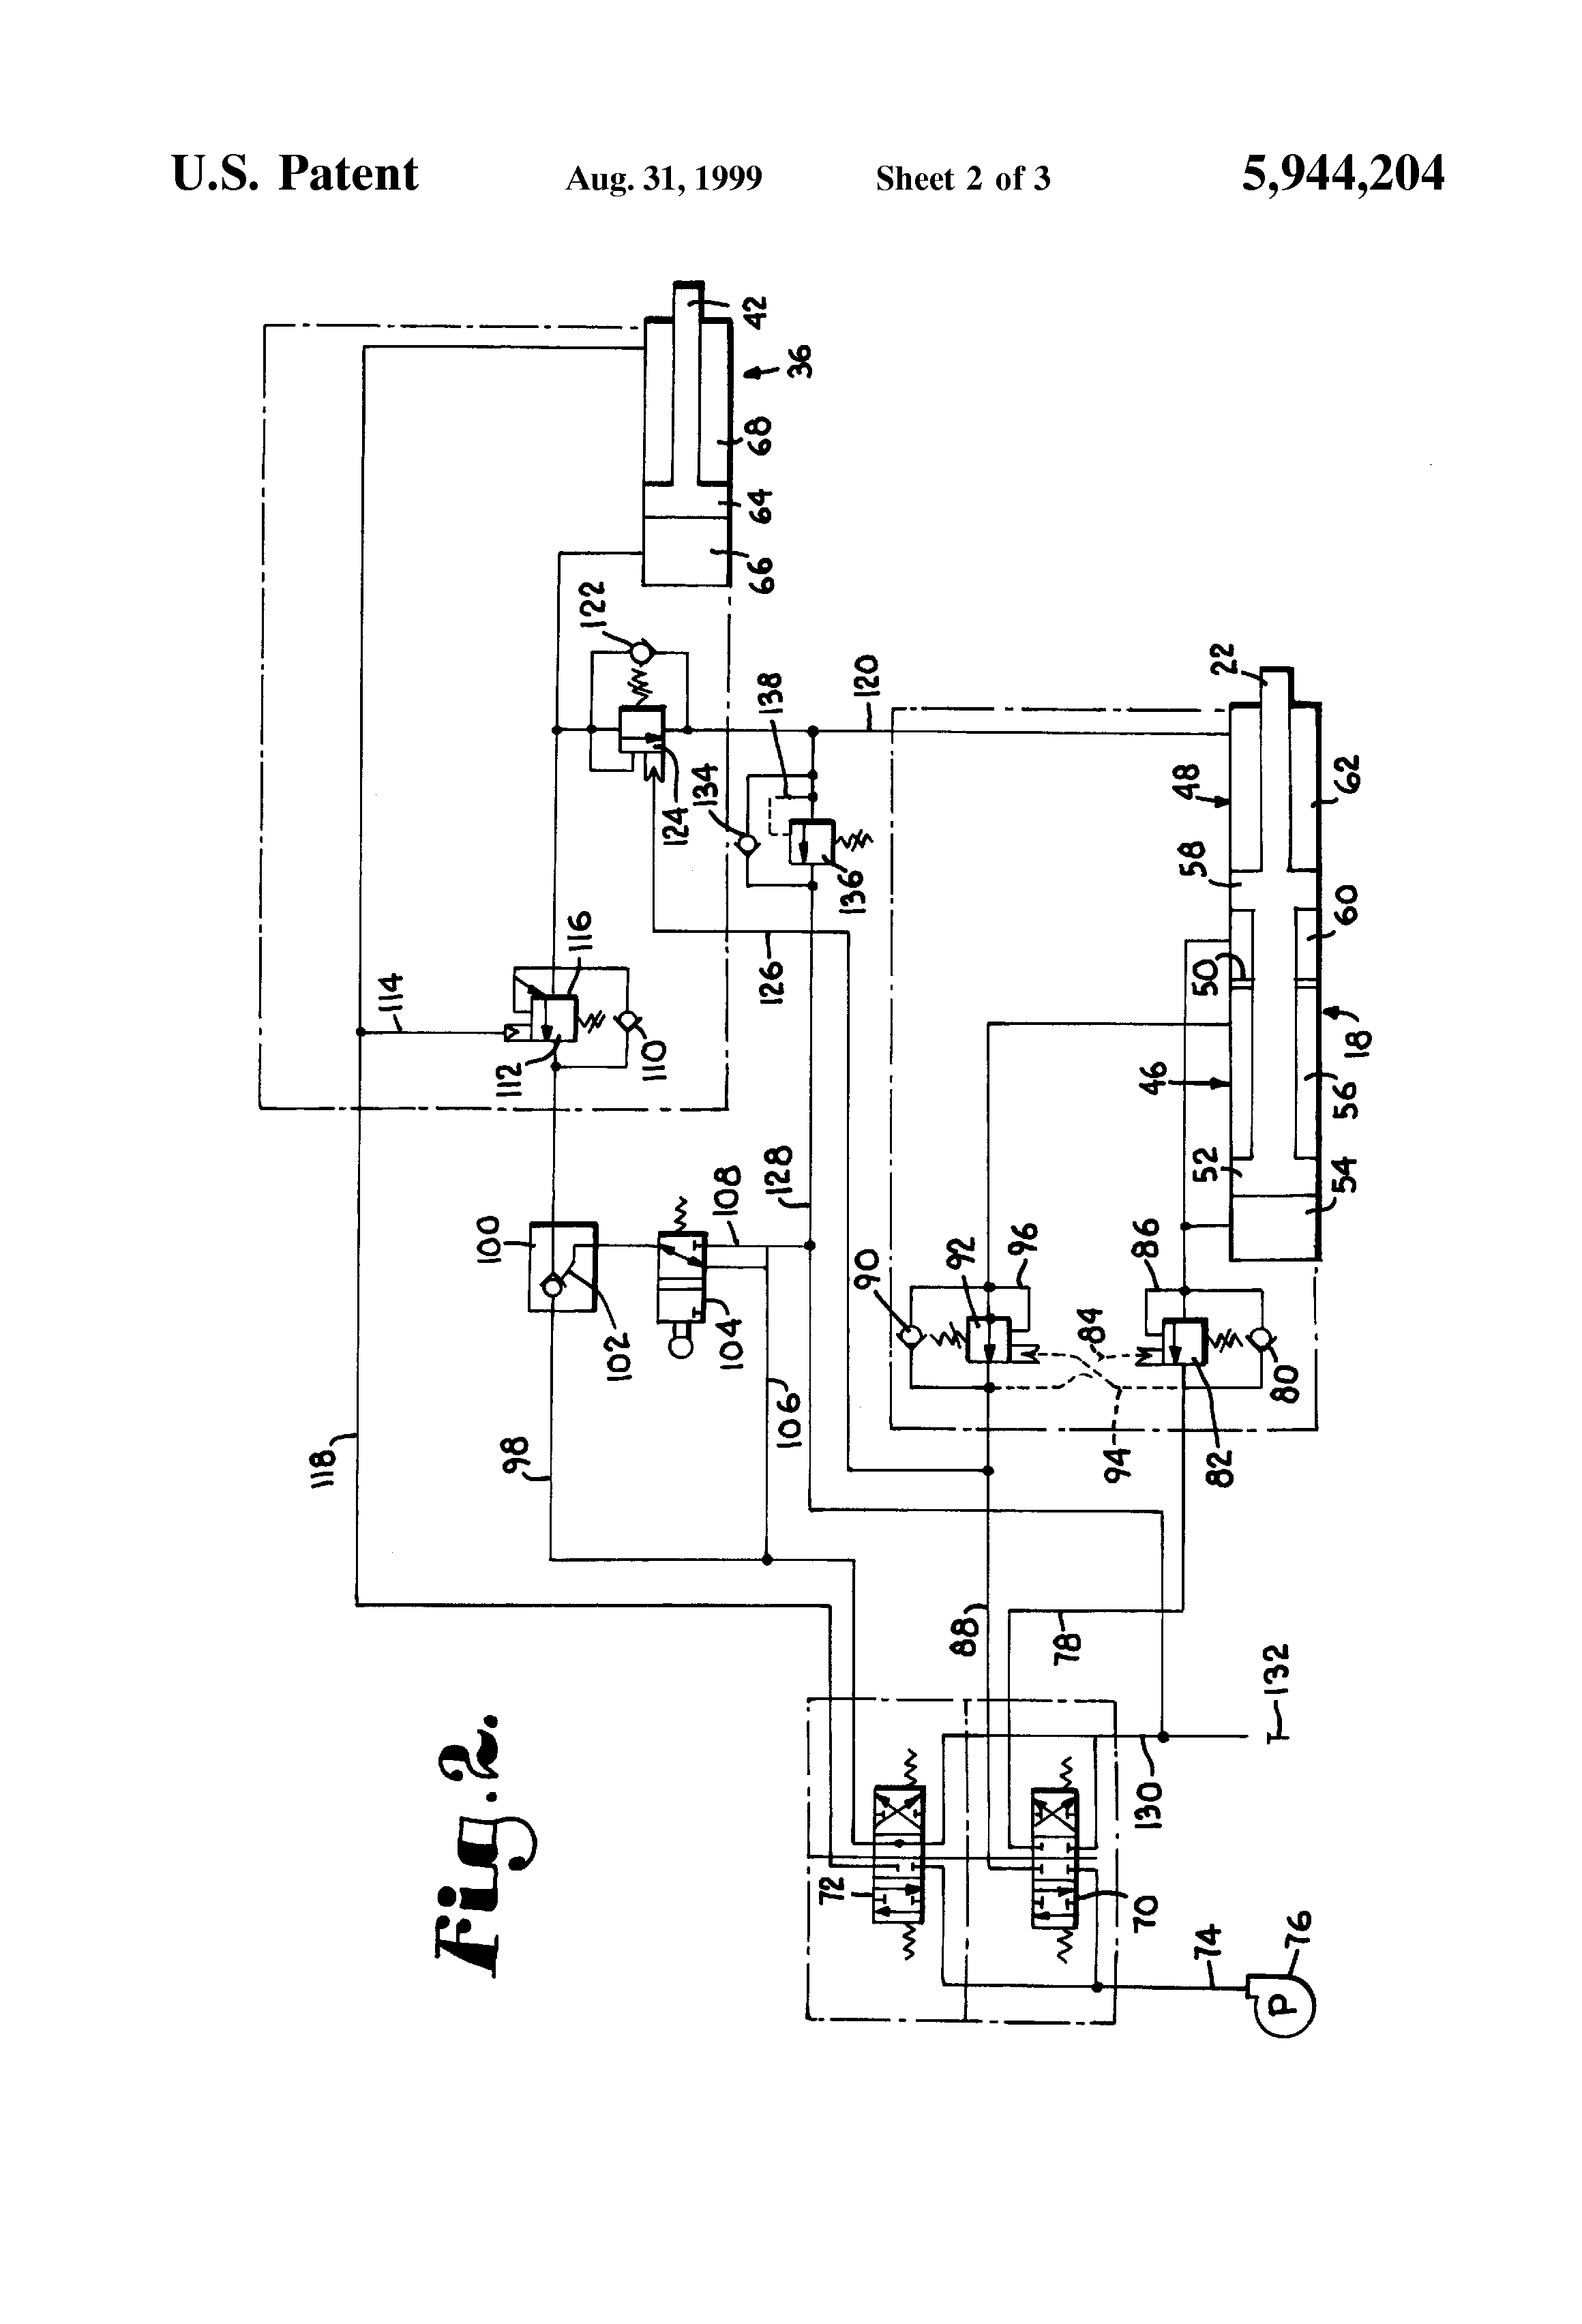 [DIAGRAM] Ford Ranger 3 2 Wiring Diagram FULL Version HD